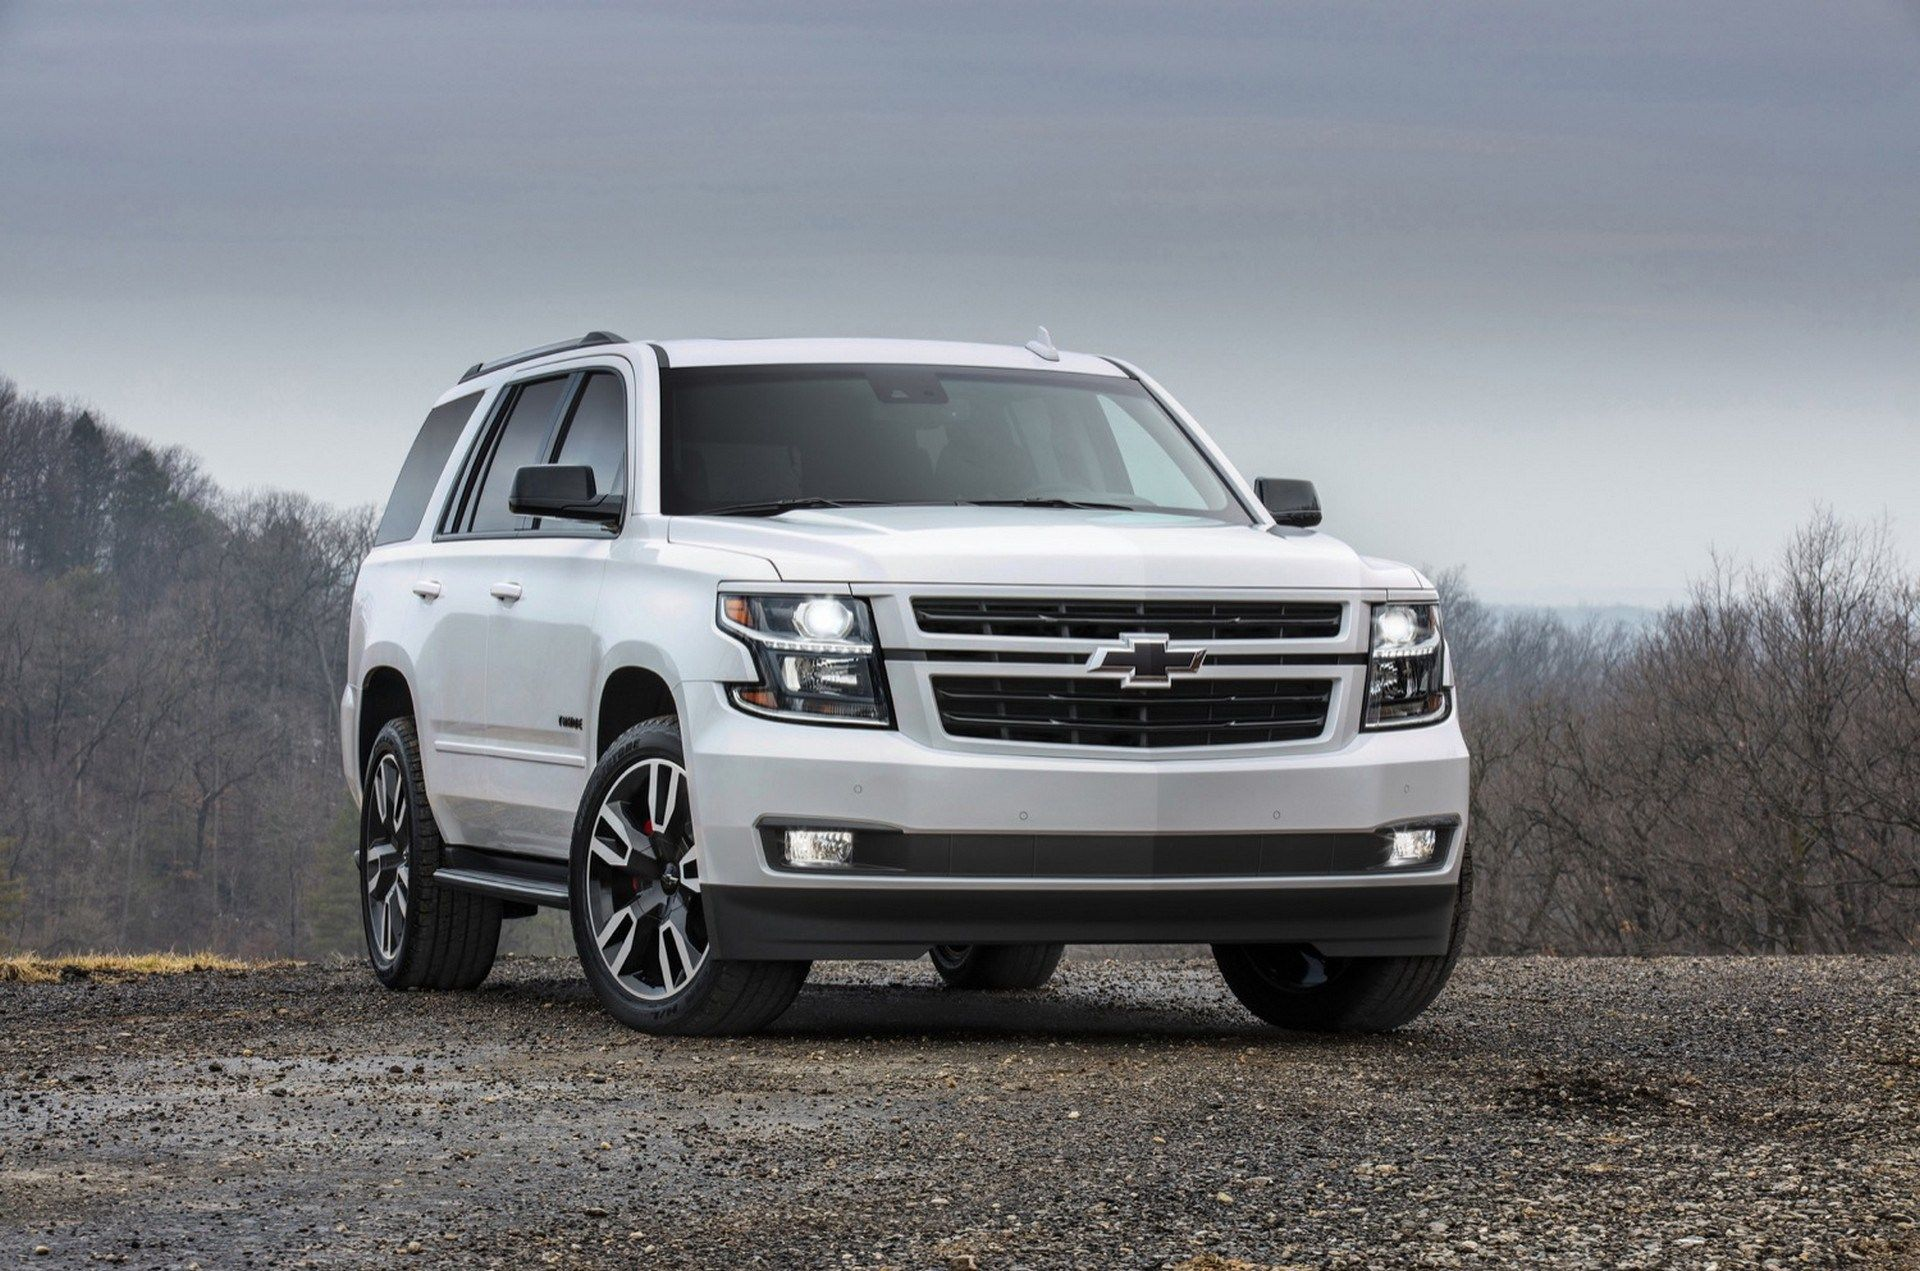 2020 Chevy Tahoe Redesign Concept And Interior Rumor Chevrolet Tahoe Chevy Tahoe Chevy Tahoe Z71